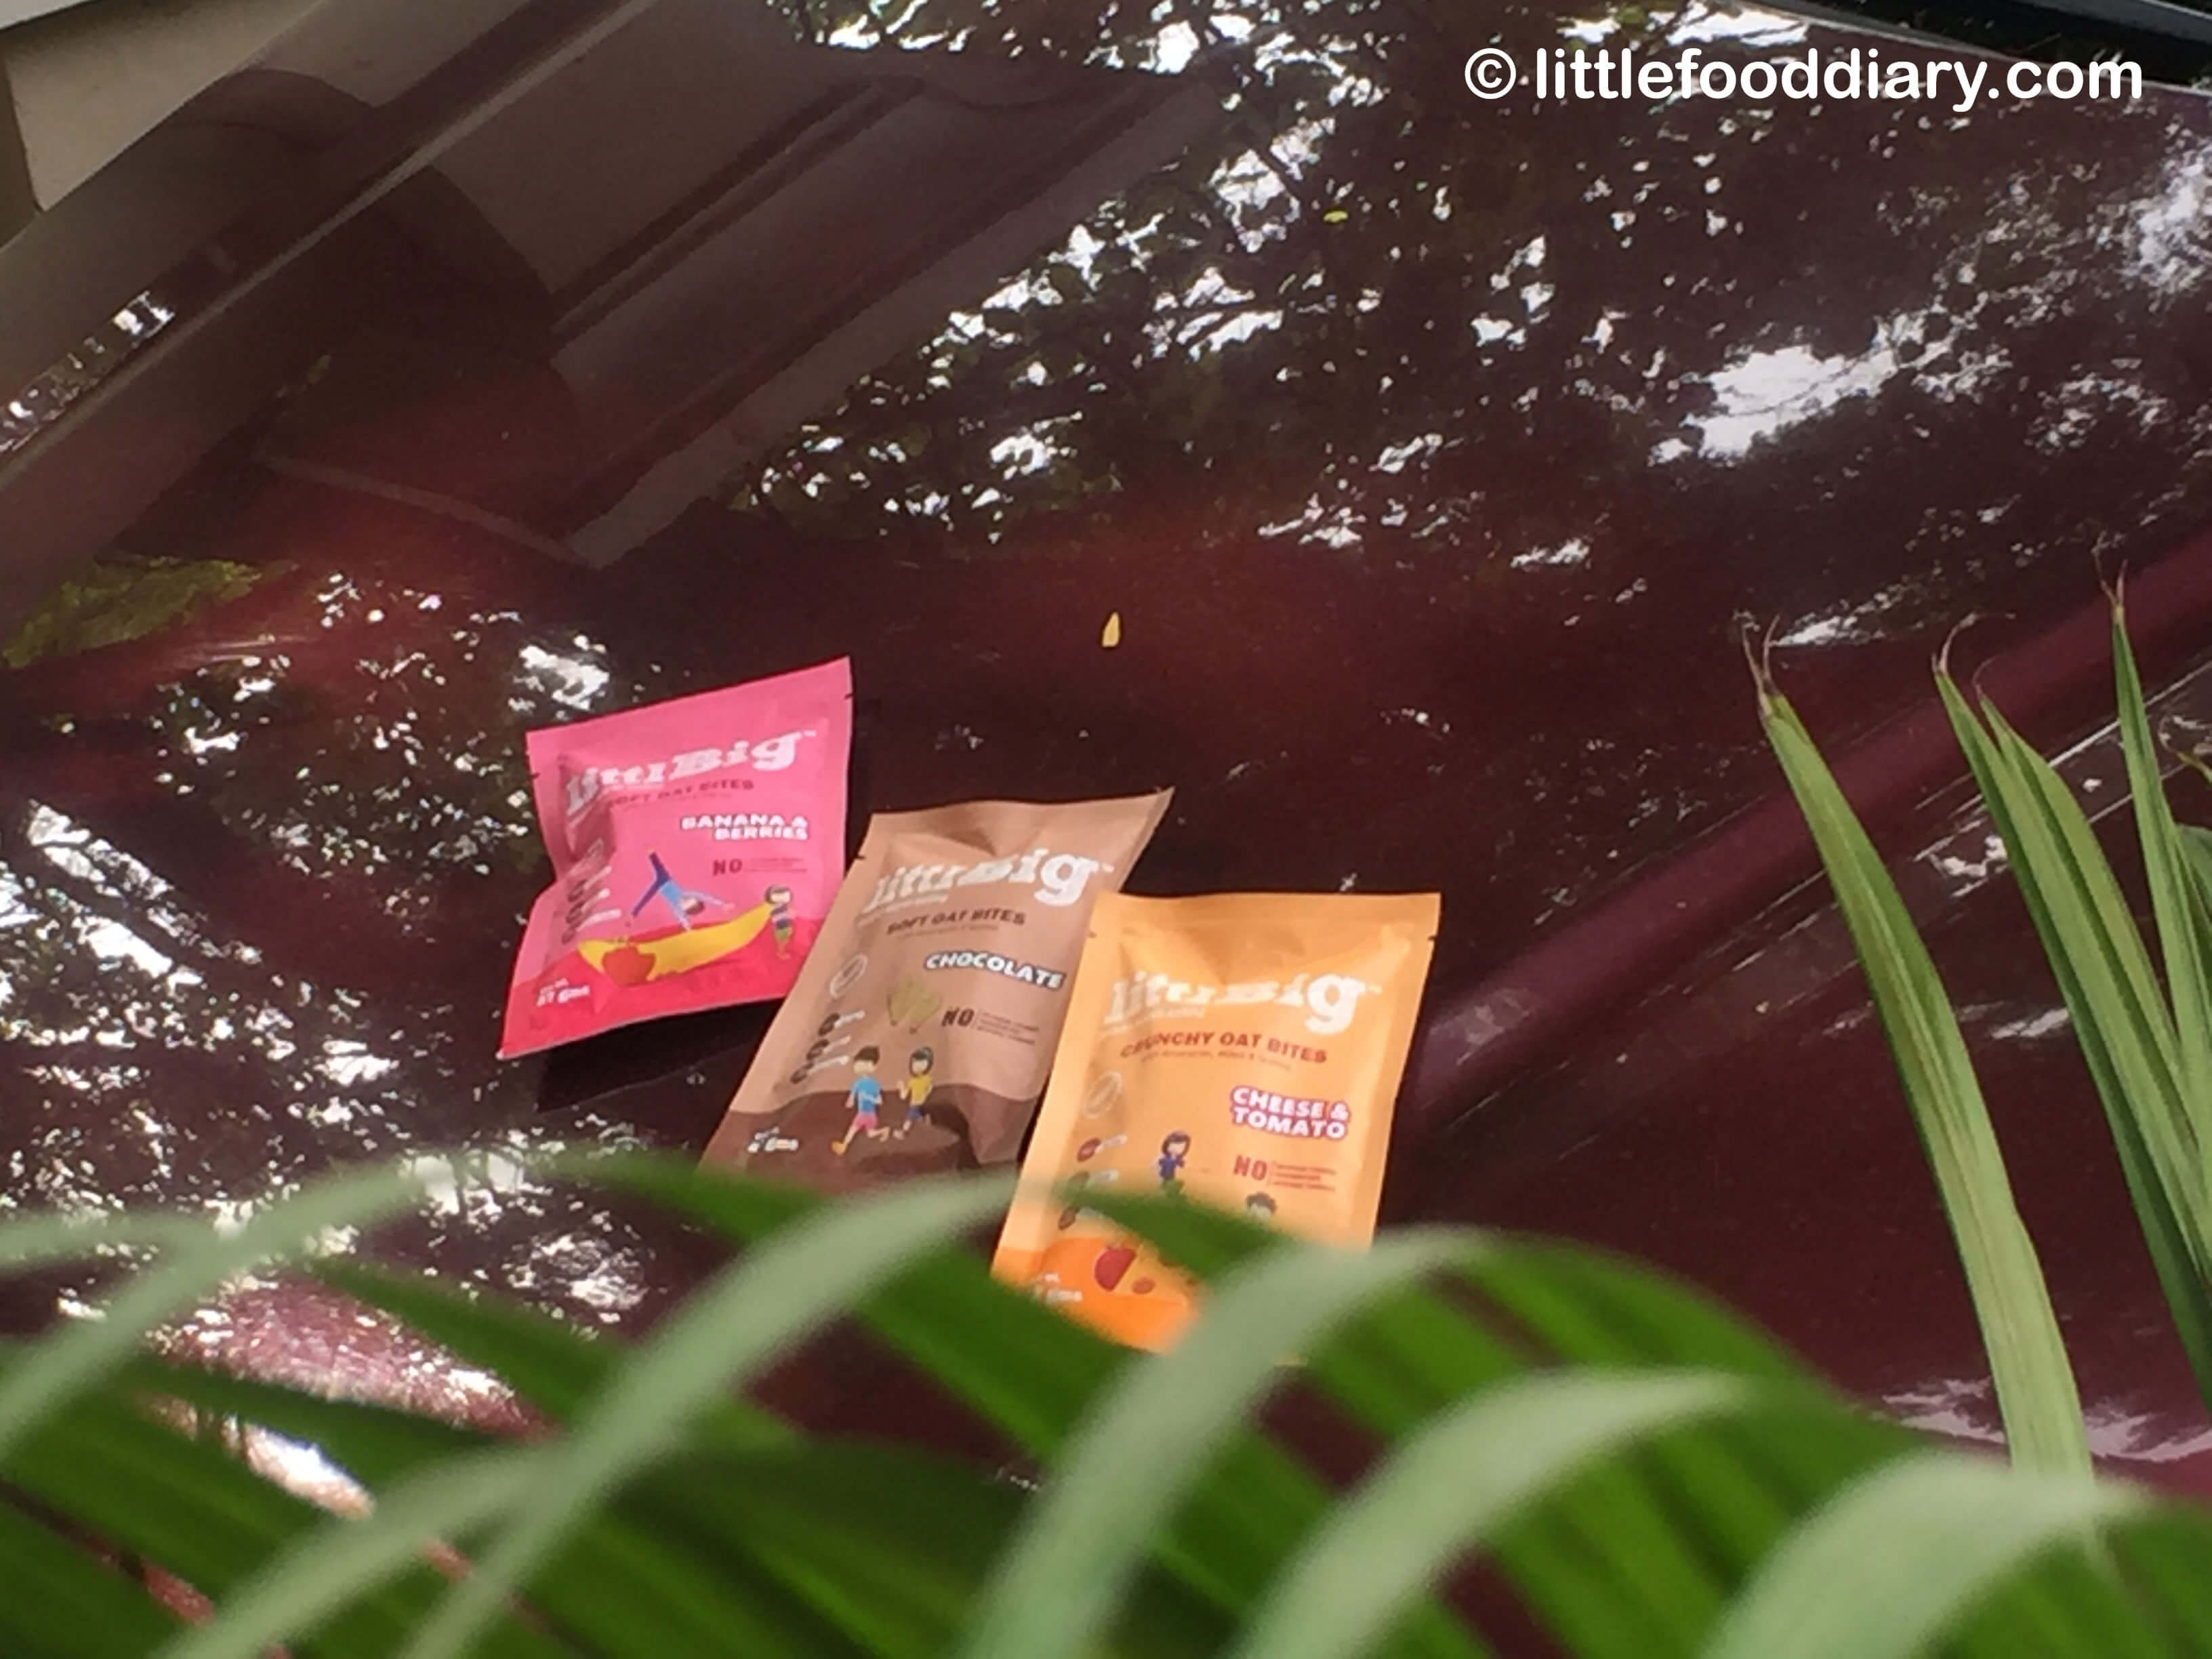 LittlBig Oat Bites – Little Snacks with Big Dreams